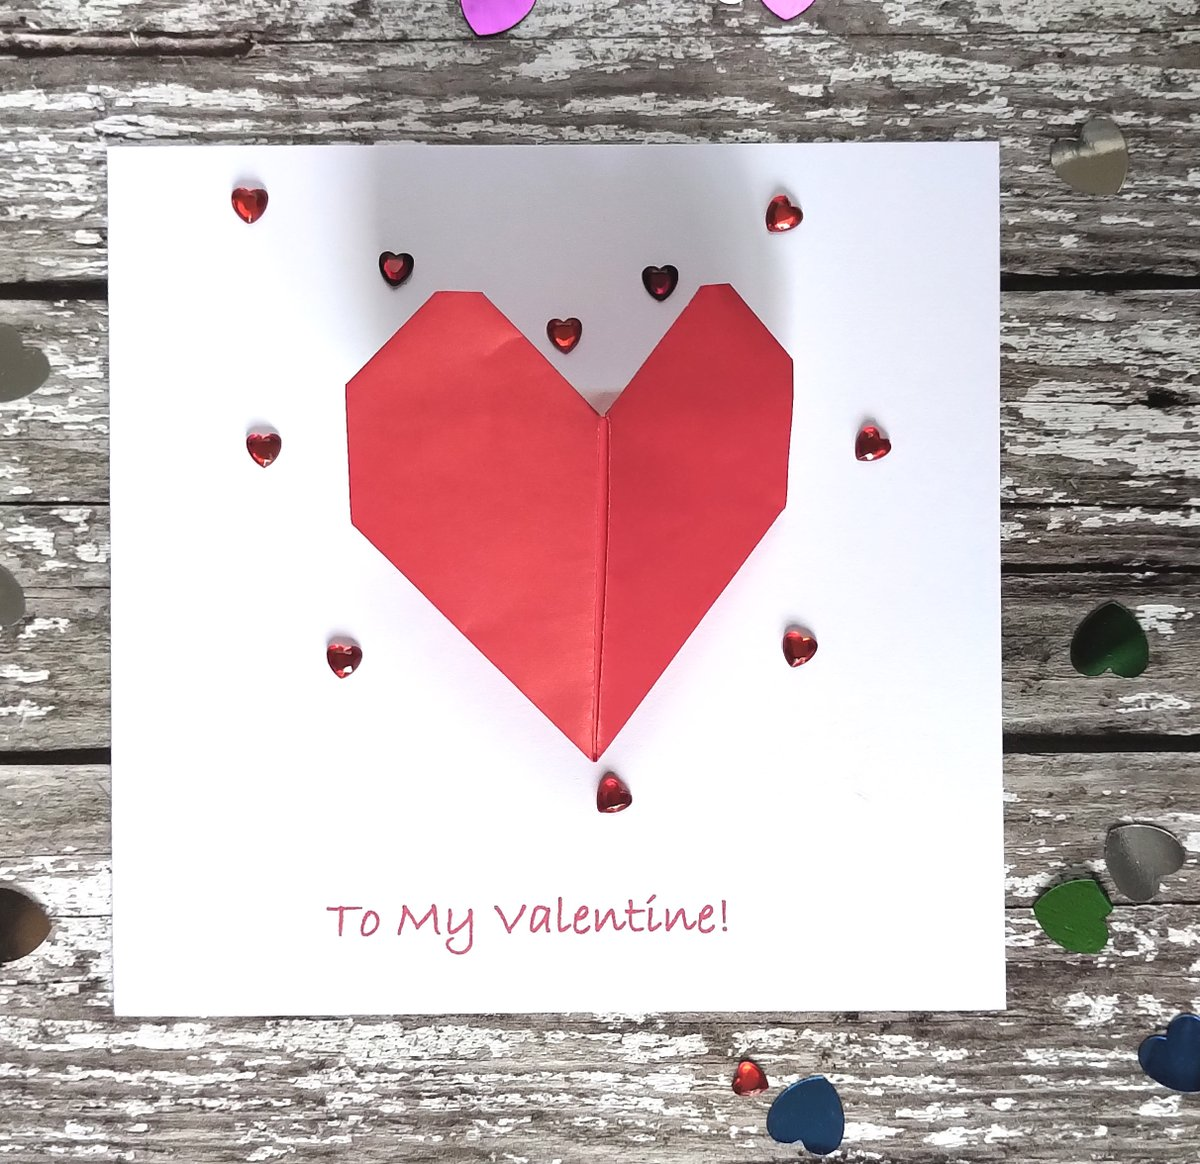 Can be personlised for the luxury touch -  hand-made 3D origami heart   #handmade #card #love #valentine #anniversary #engagement #wedding #TBCH